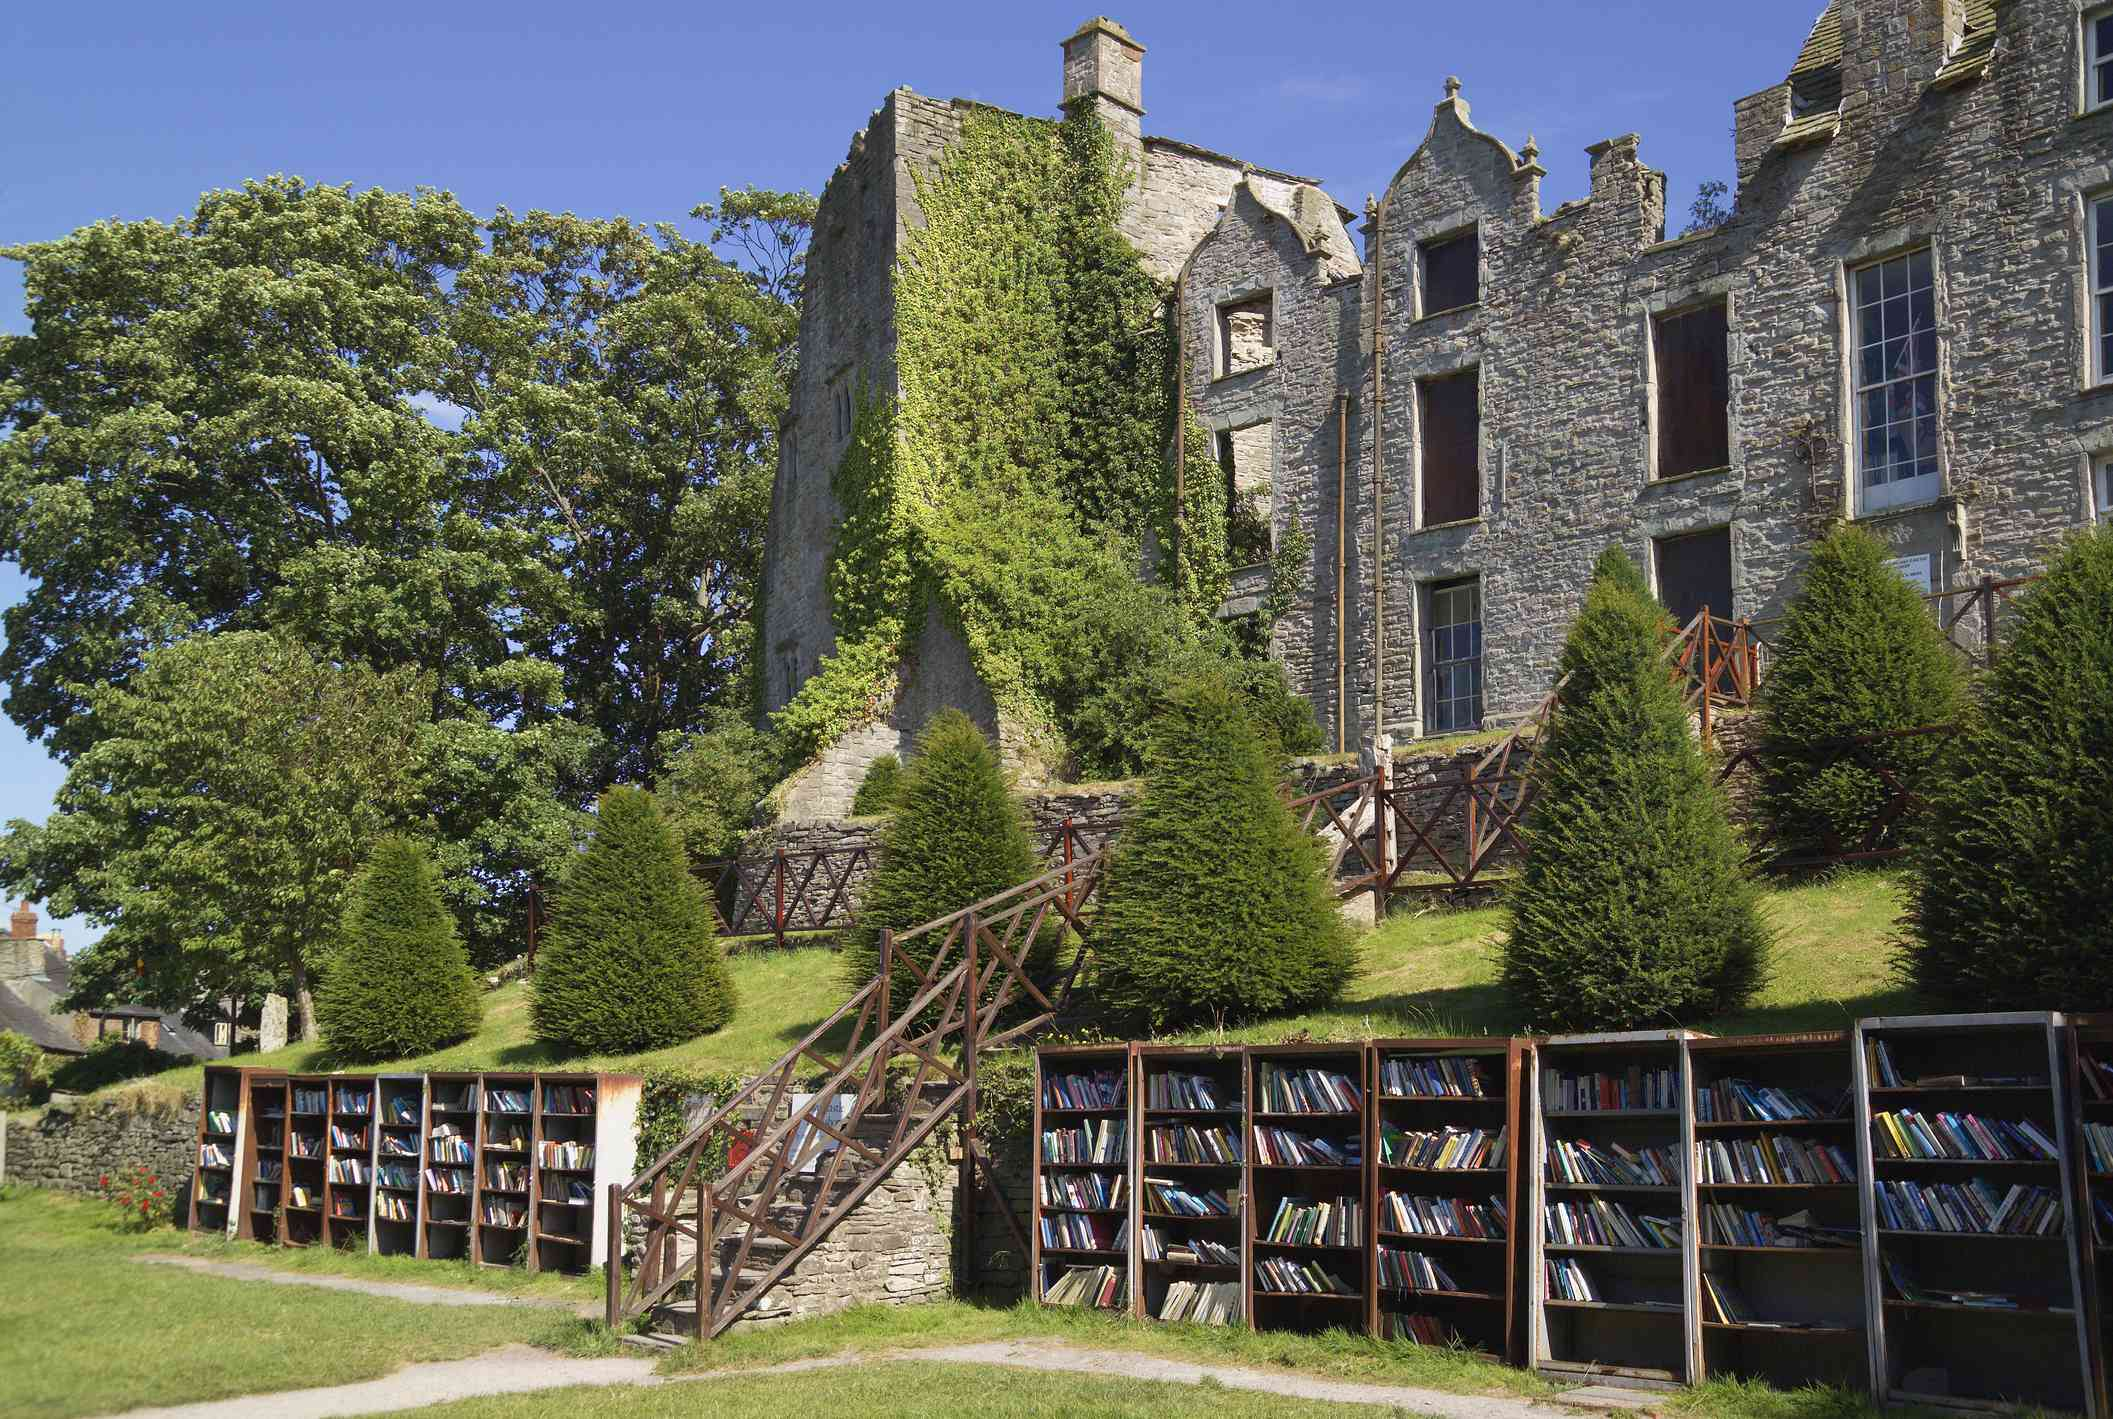 UK, Wales, Powys, Hay-on-Wye, Hay Castle, bookstalls in grounds